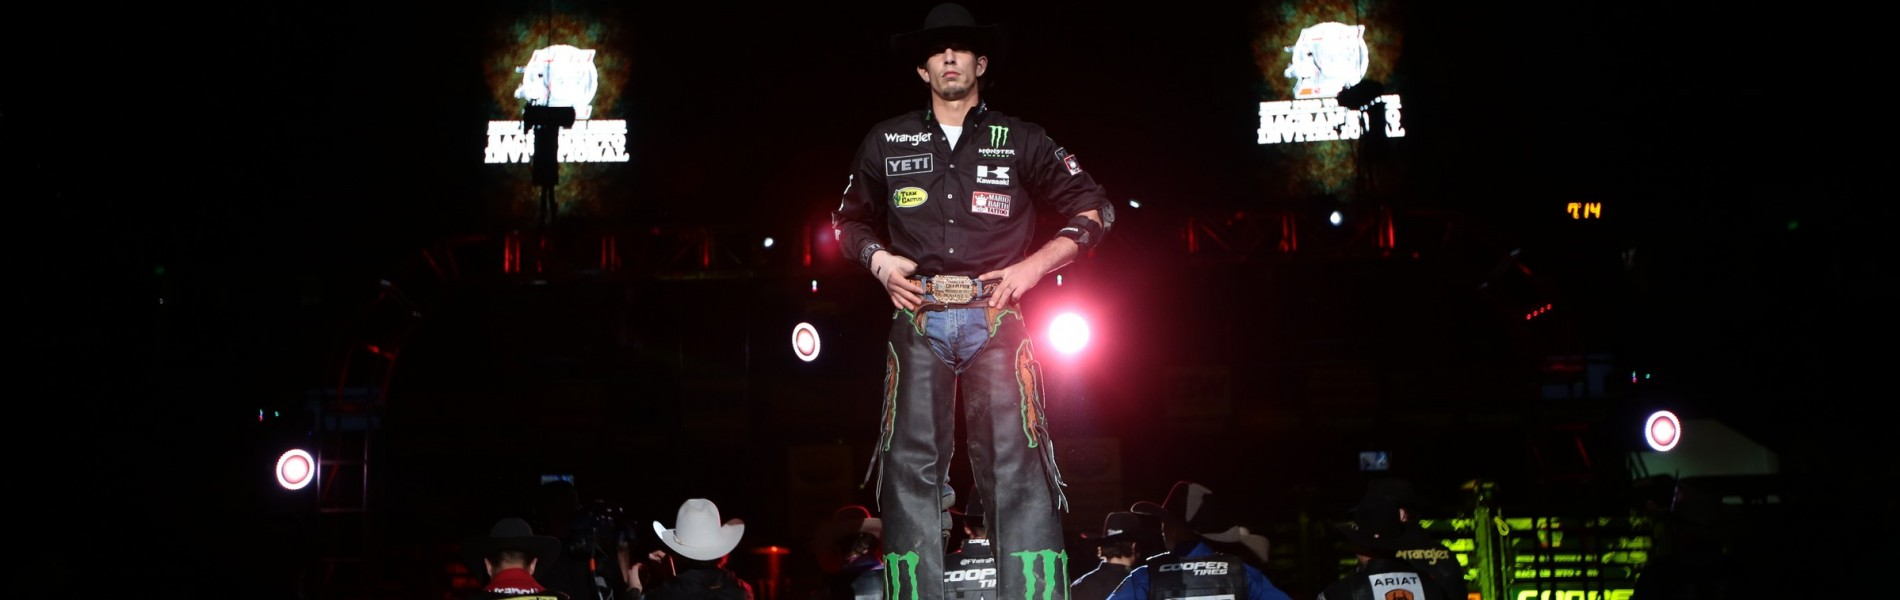 JB Mauney in the opening during the second round of the Sacramento Built Ford Tough series PBR